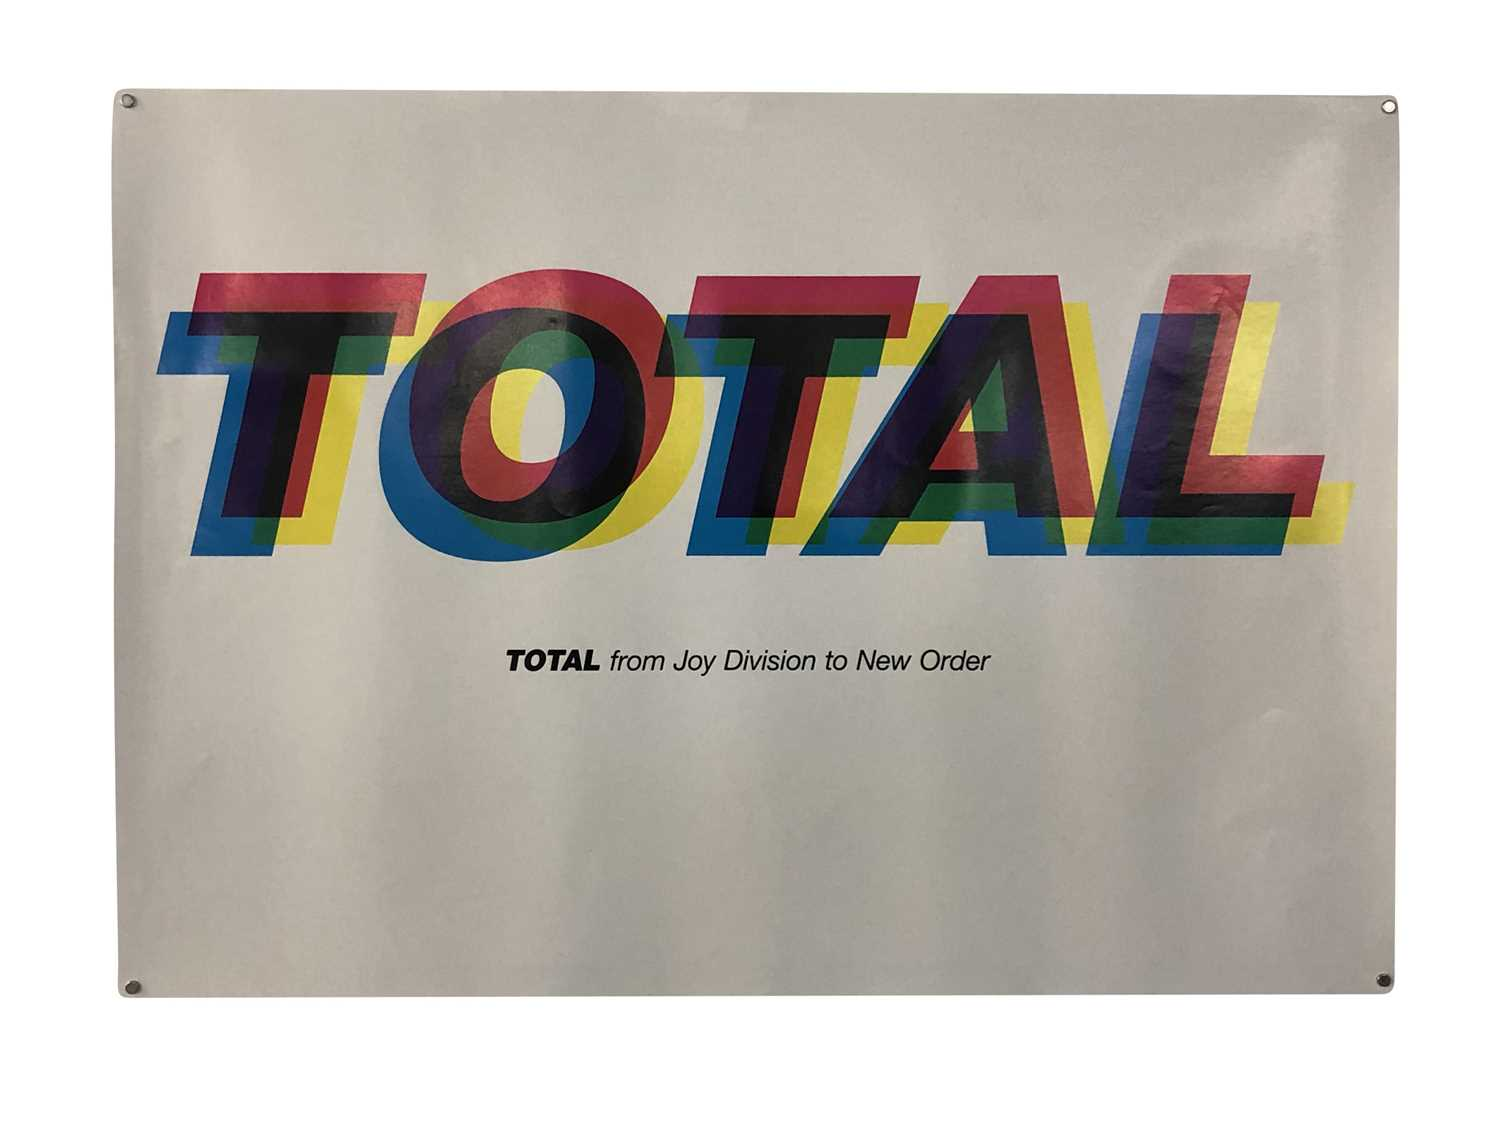 NEW ORDER PROMO & GIG POSTERS COLLECTION - Image 5 of 7